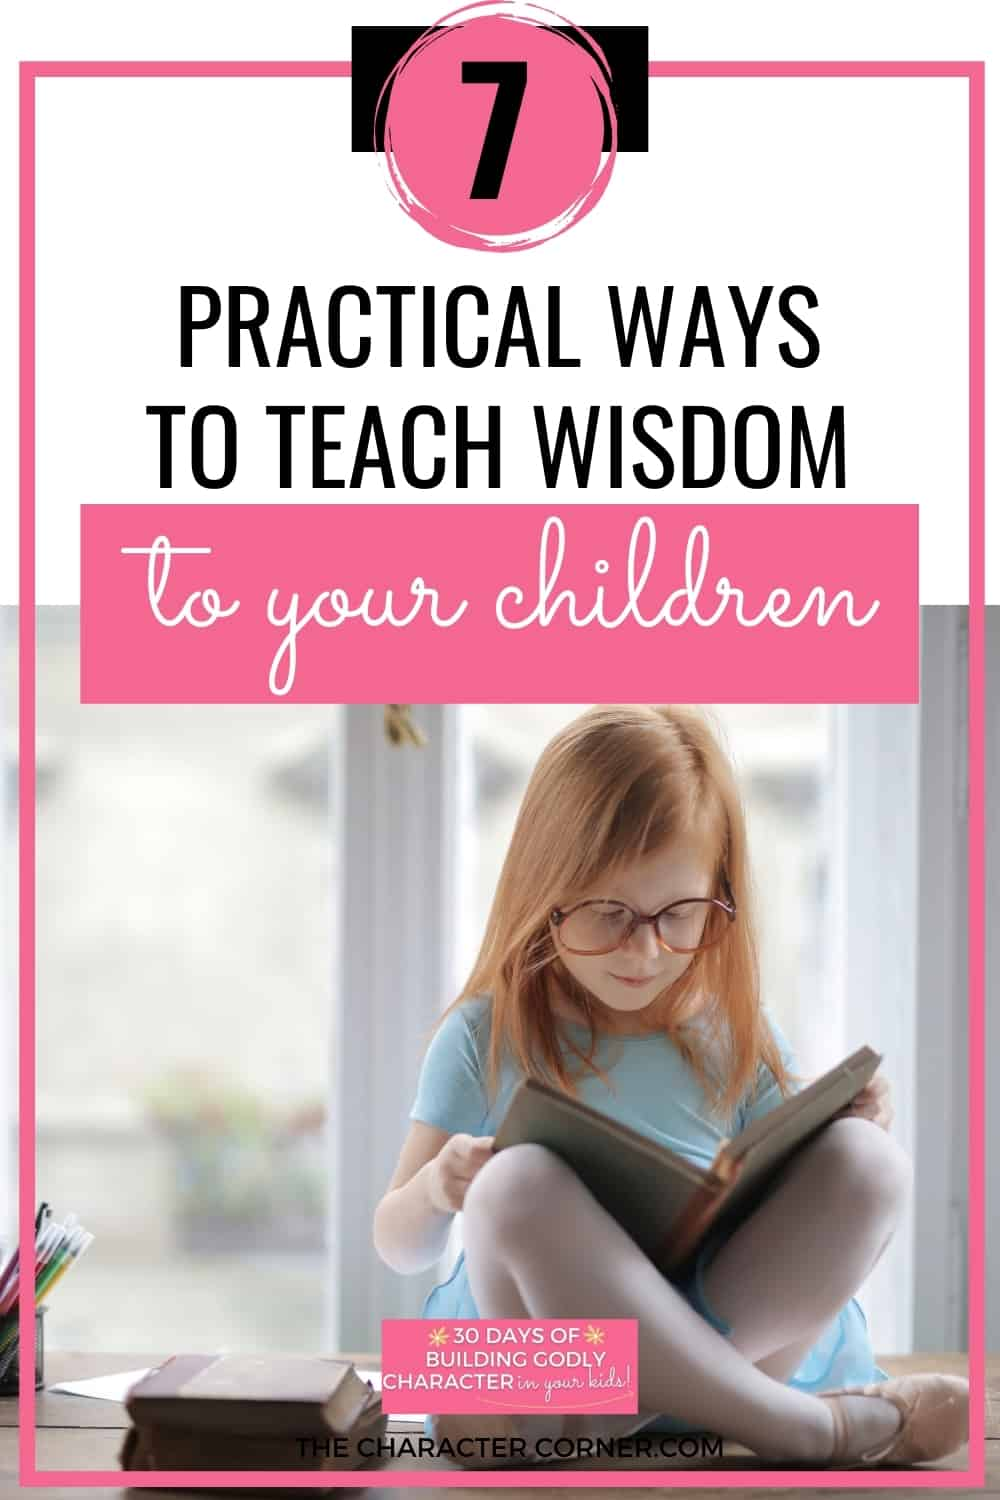 Young daughter reading the bible for wisdom. Text on image reads: 7 Practical Ways To Teach Wisdom To Your Children